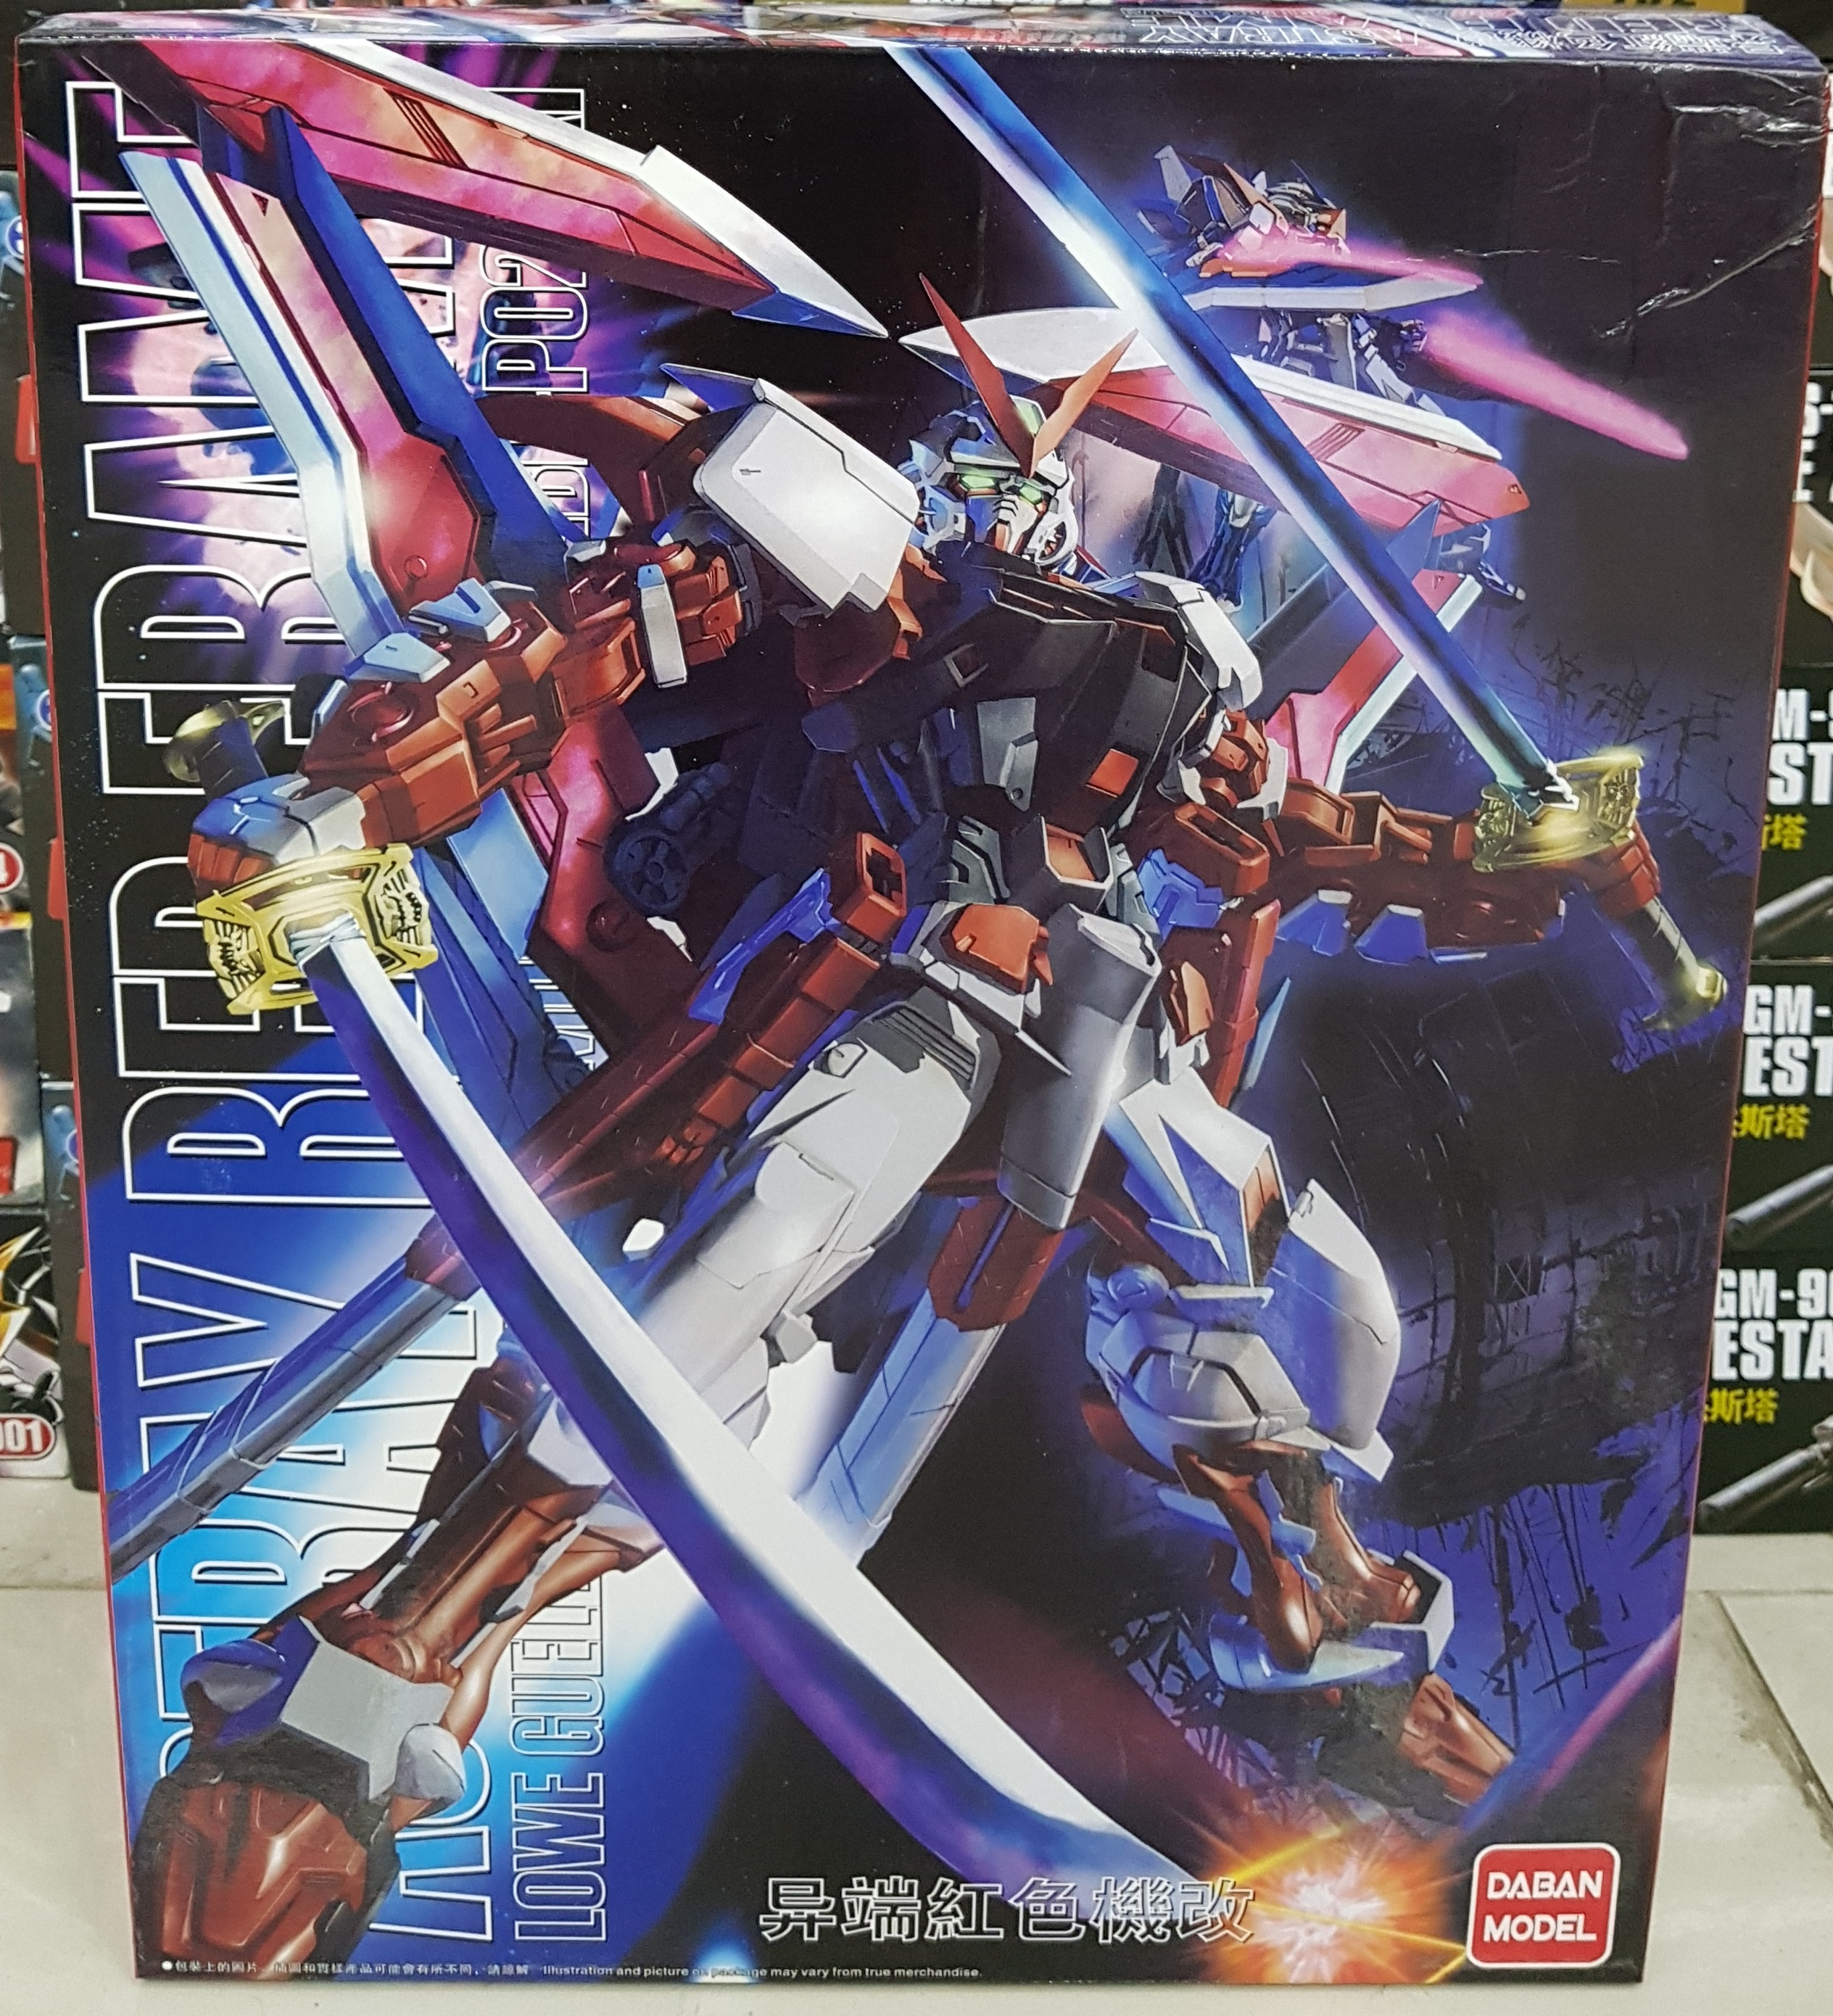 RED FRAME MG [6601]